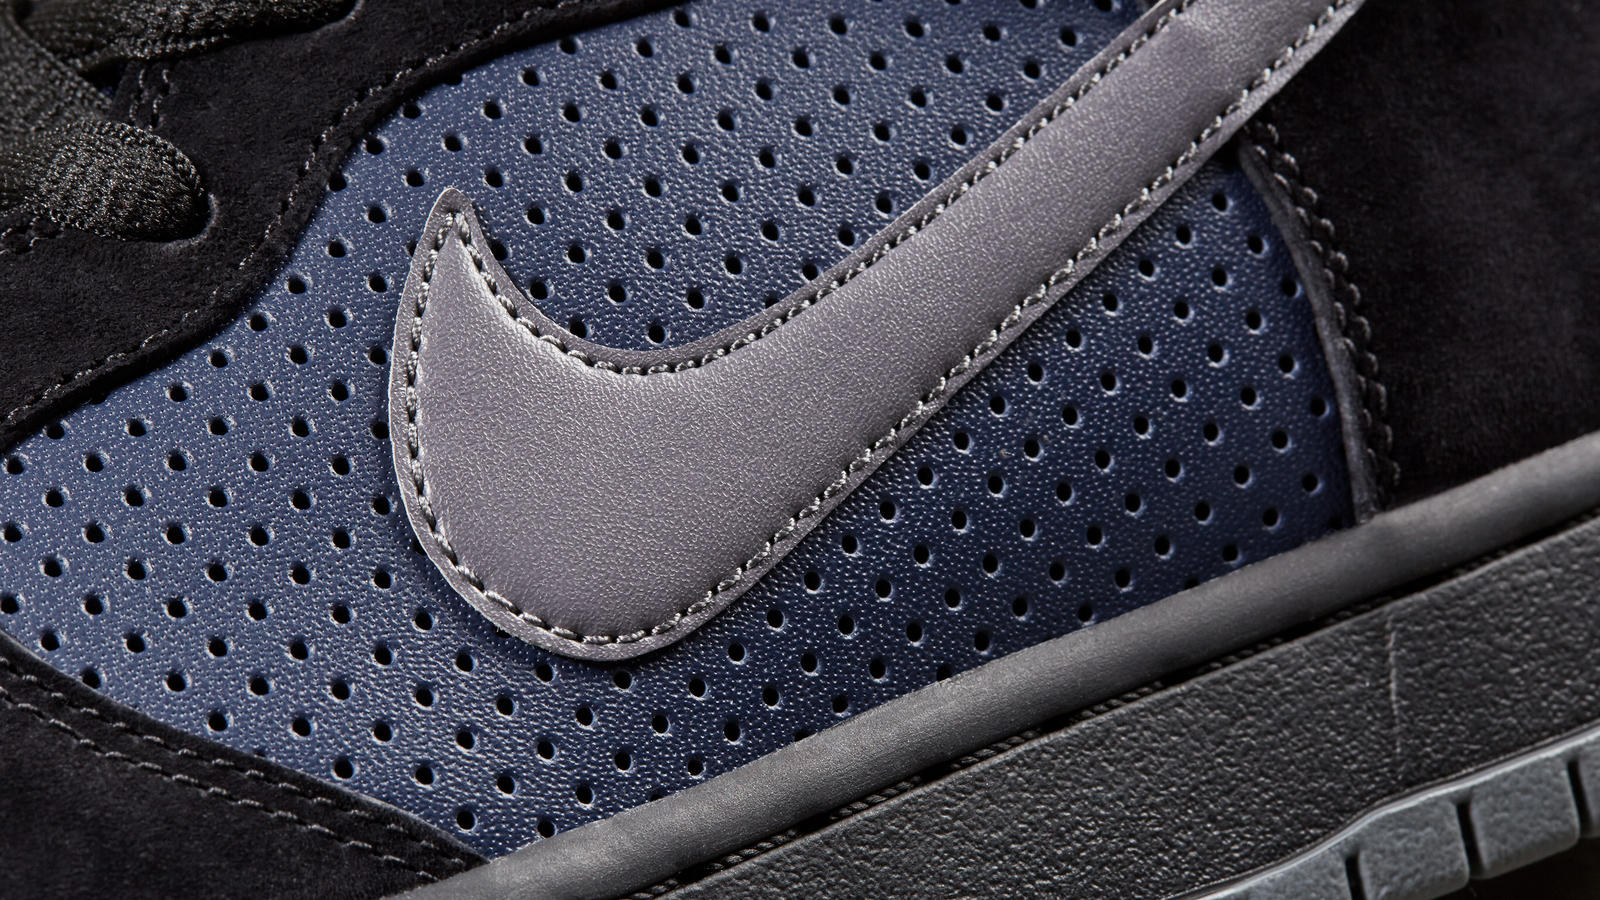 170320 footwear sb blk navy dunk 0280 hd 1600